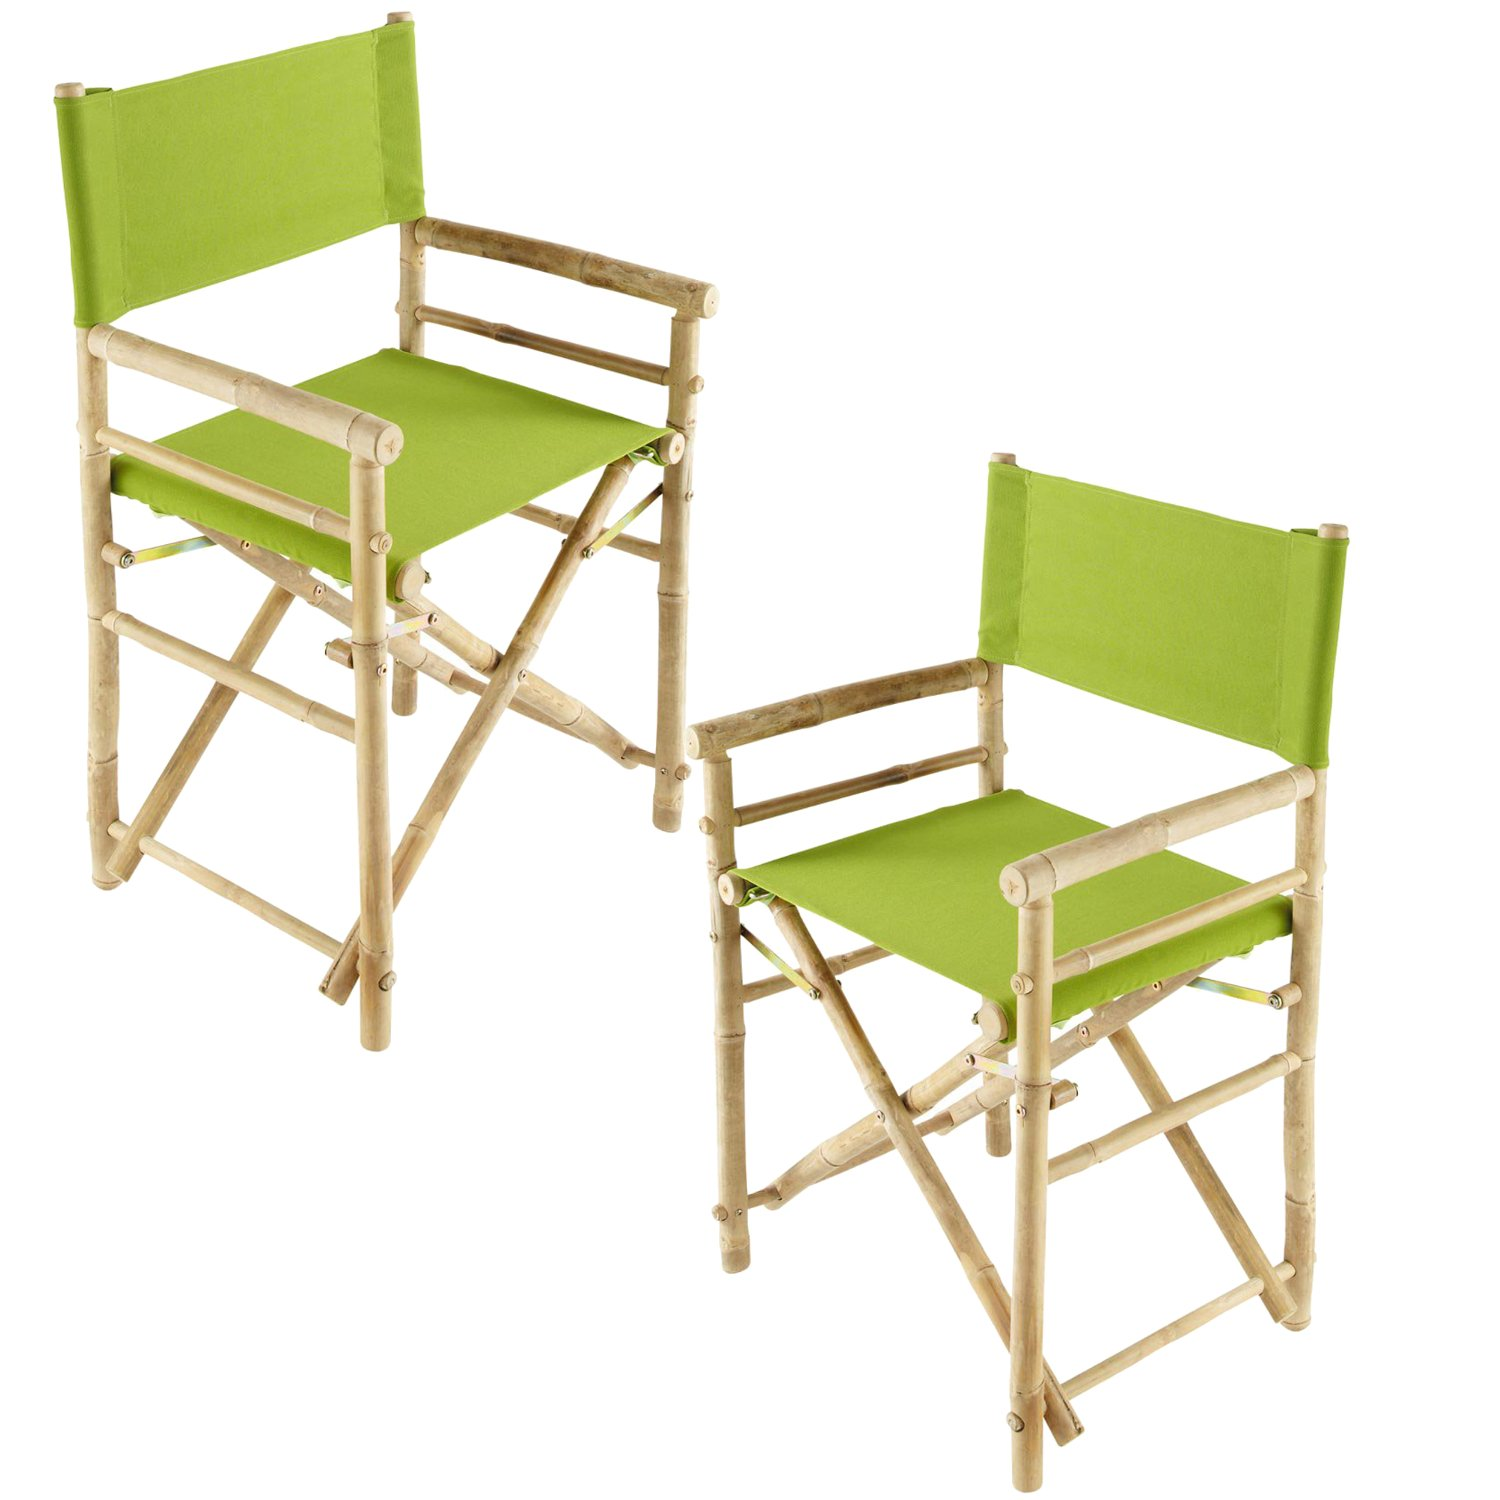 Zew Indoor Green Canvas Folding Director Chair Bamboo Portable Camping Outdoor Set of 2, 35 H x 18 W x 23 D